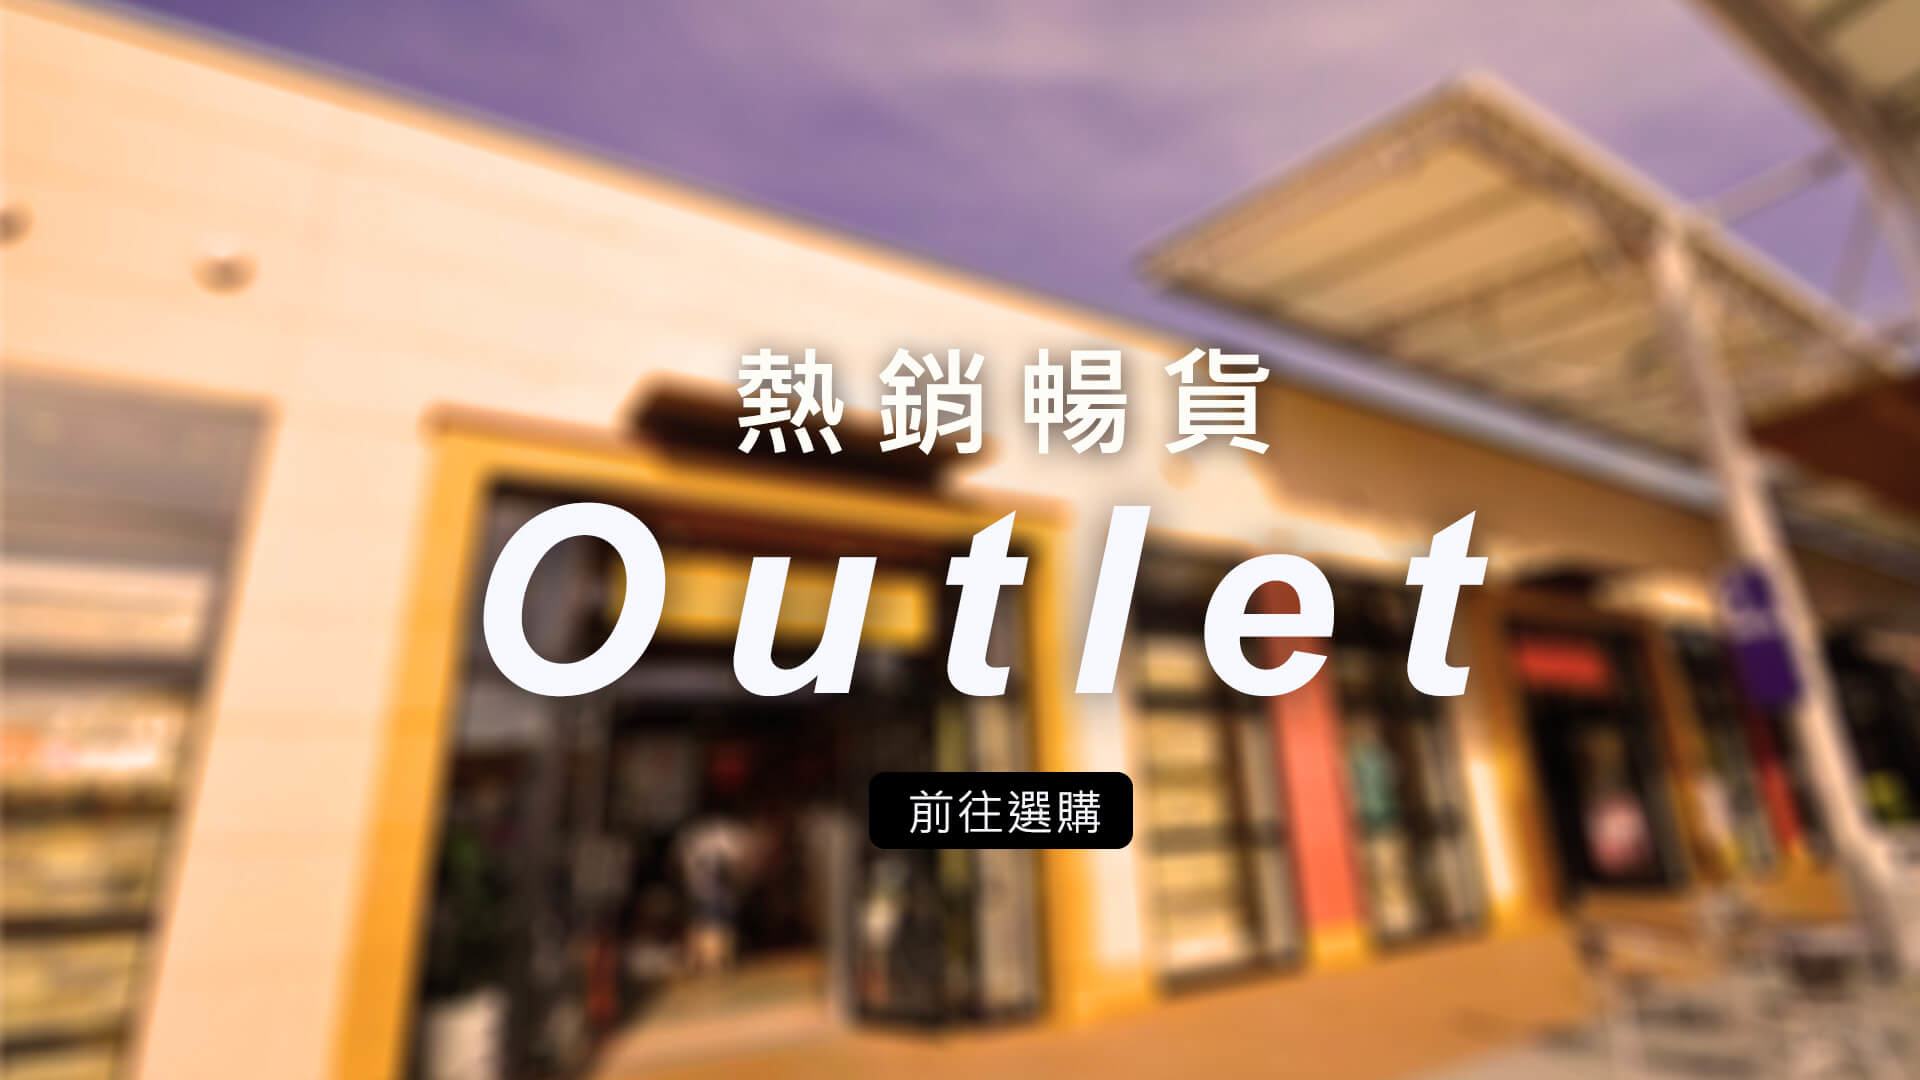 OUTLET暢貨專區